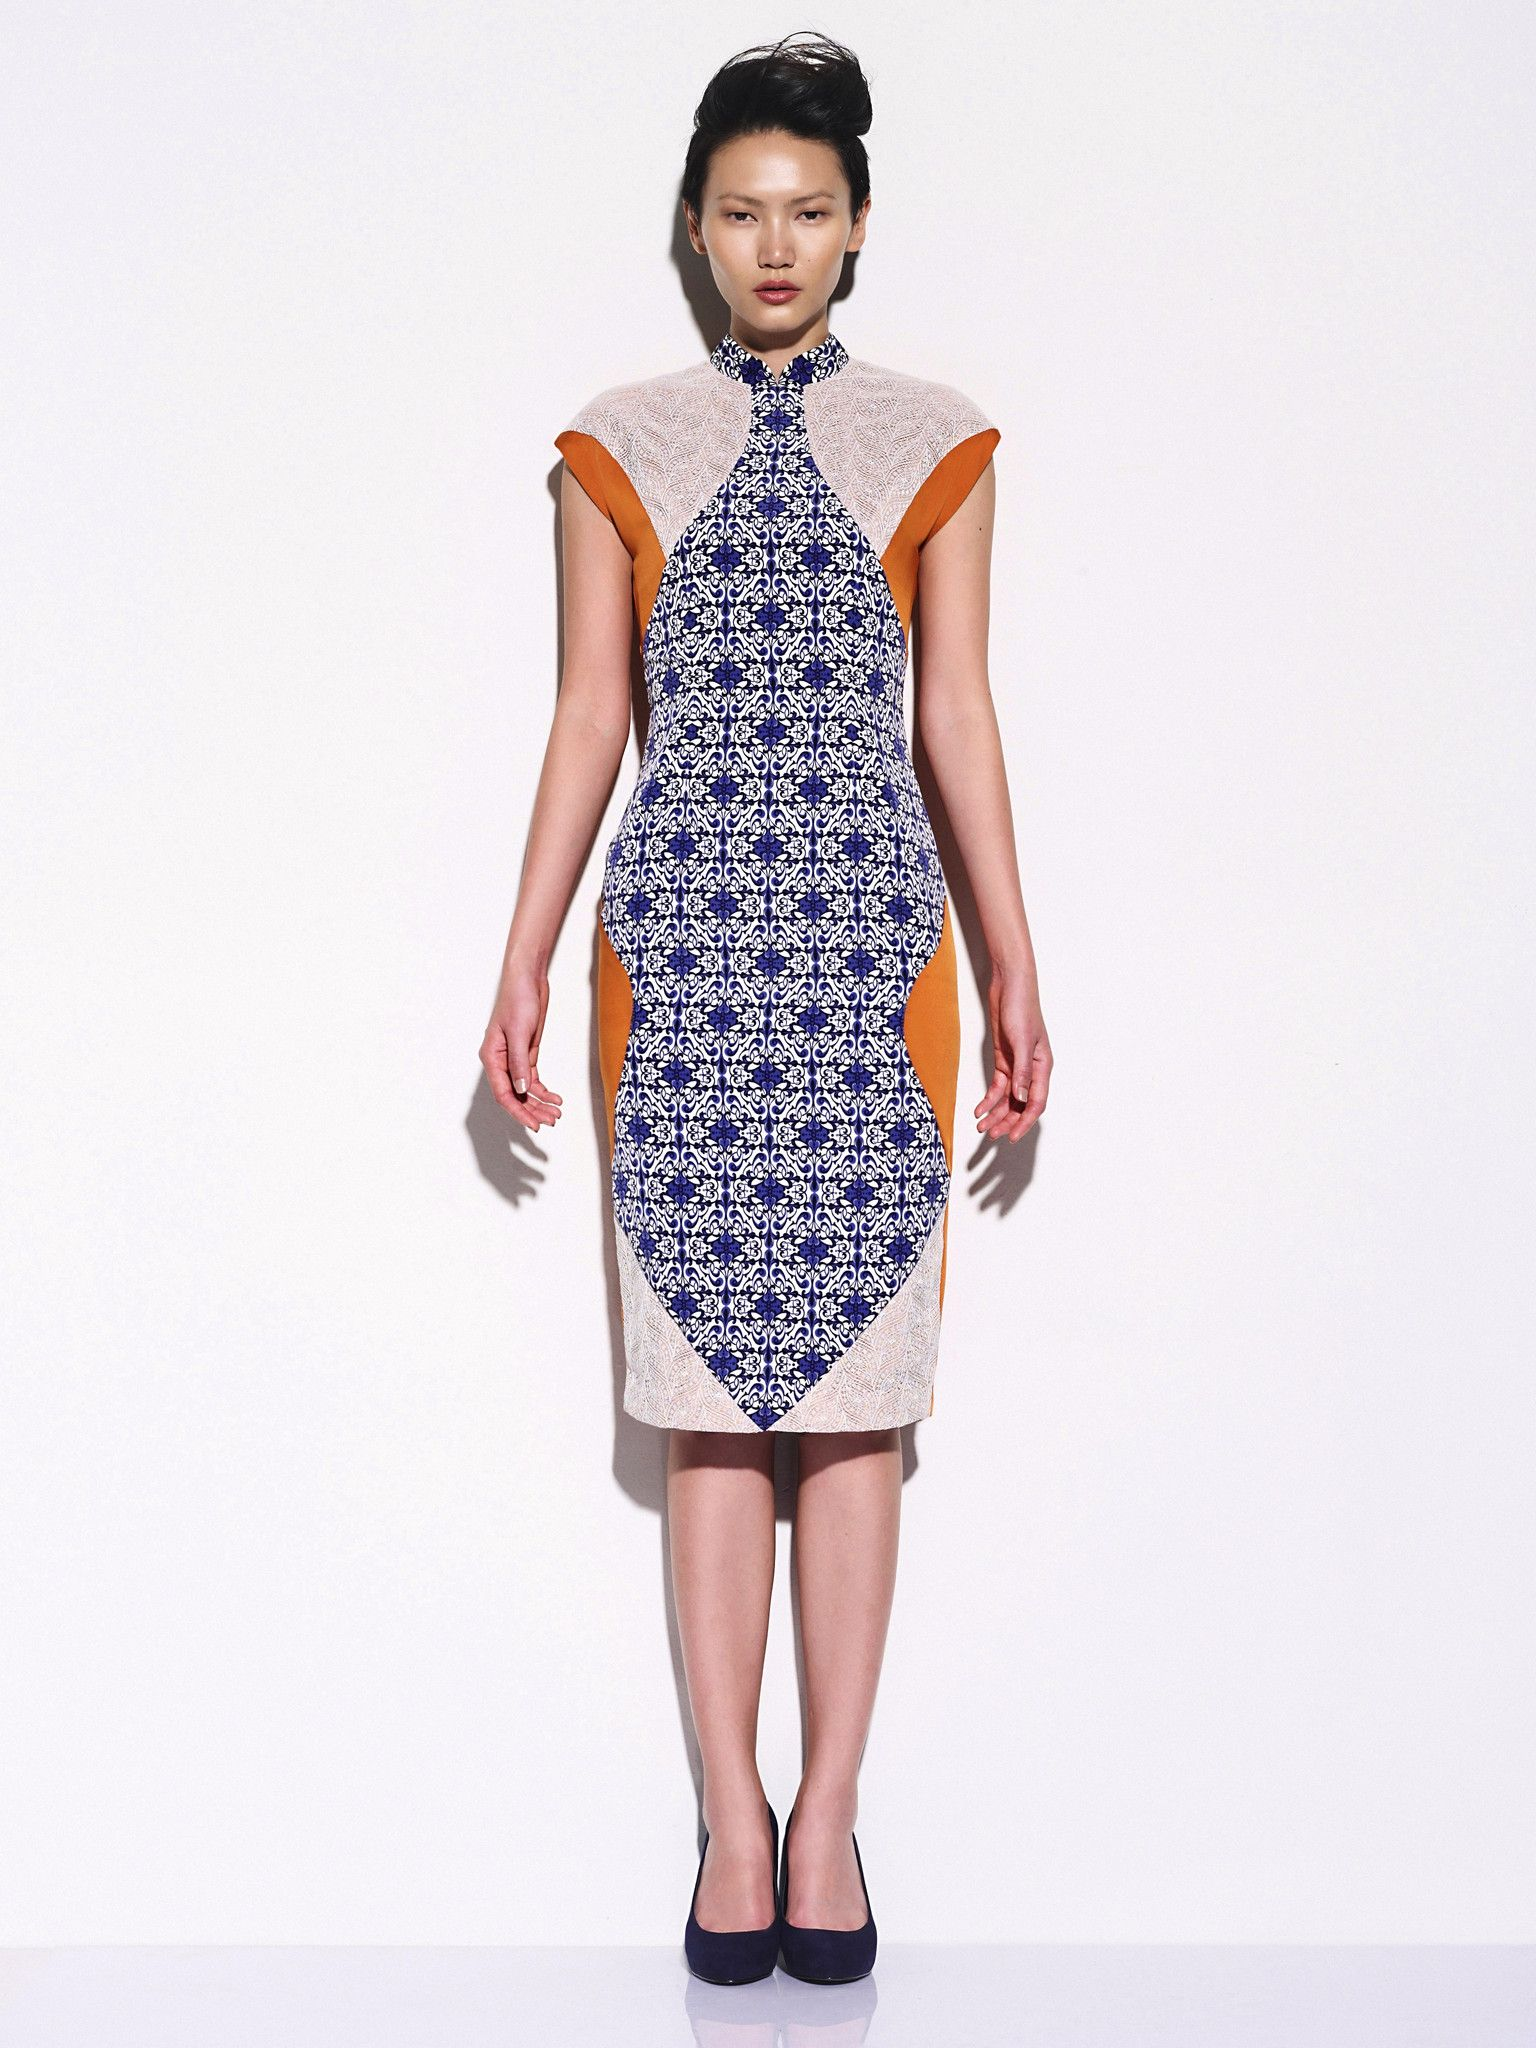 One day I\'m going to own an Ong Shunmugam\'s dress ...